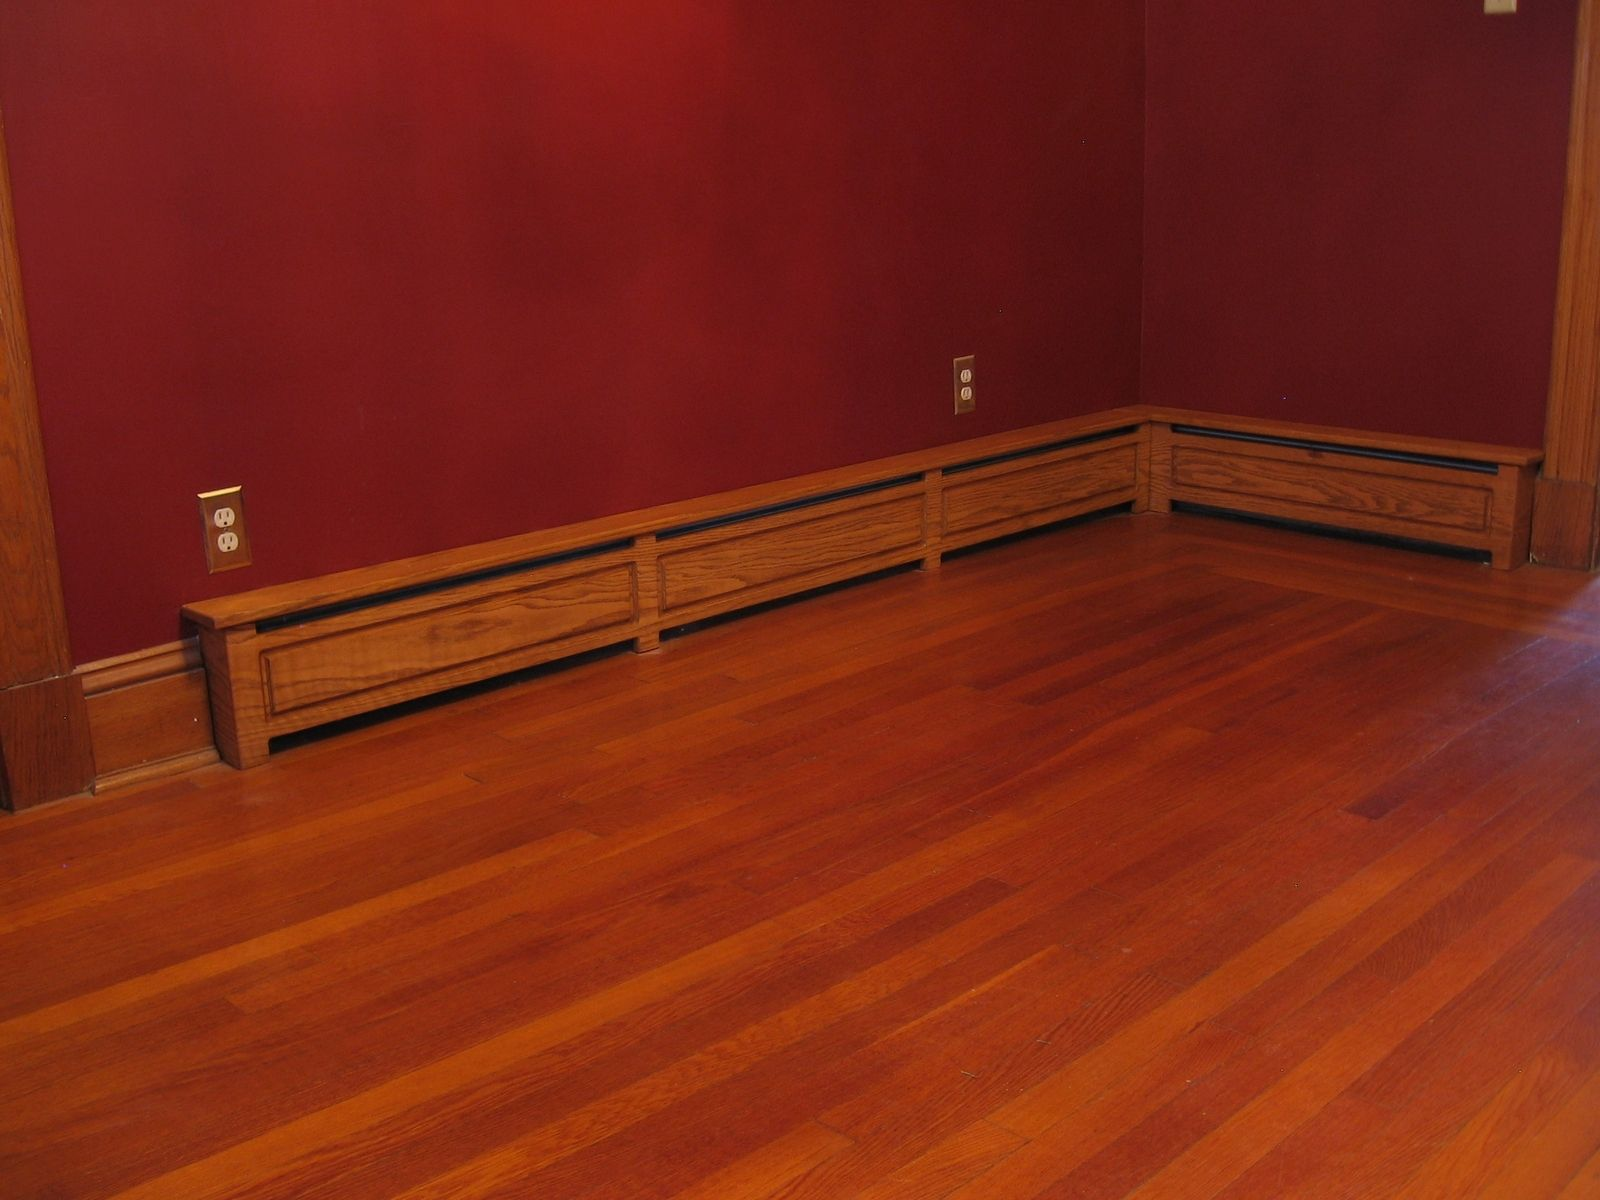 Wood Baseboard Heater Covers Custom Made Baseboard